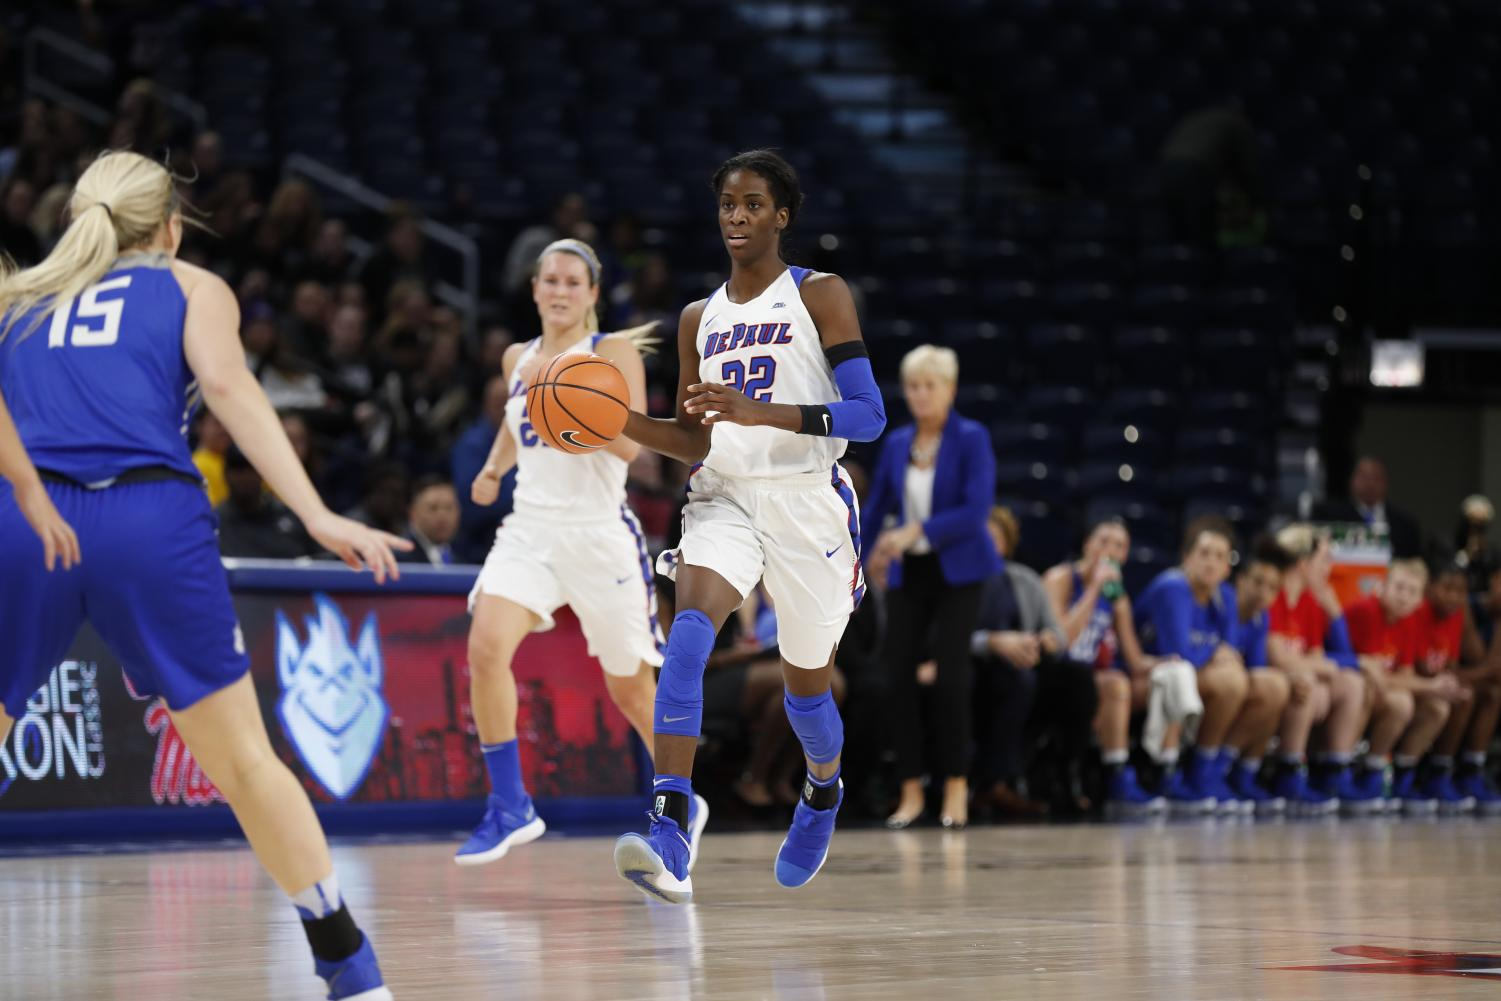 Sophomore forward Chante Stonewall finished with 16 points and six rebounds in a key DePaul road win (Photo Courtesy of DePaul Athletics)